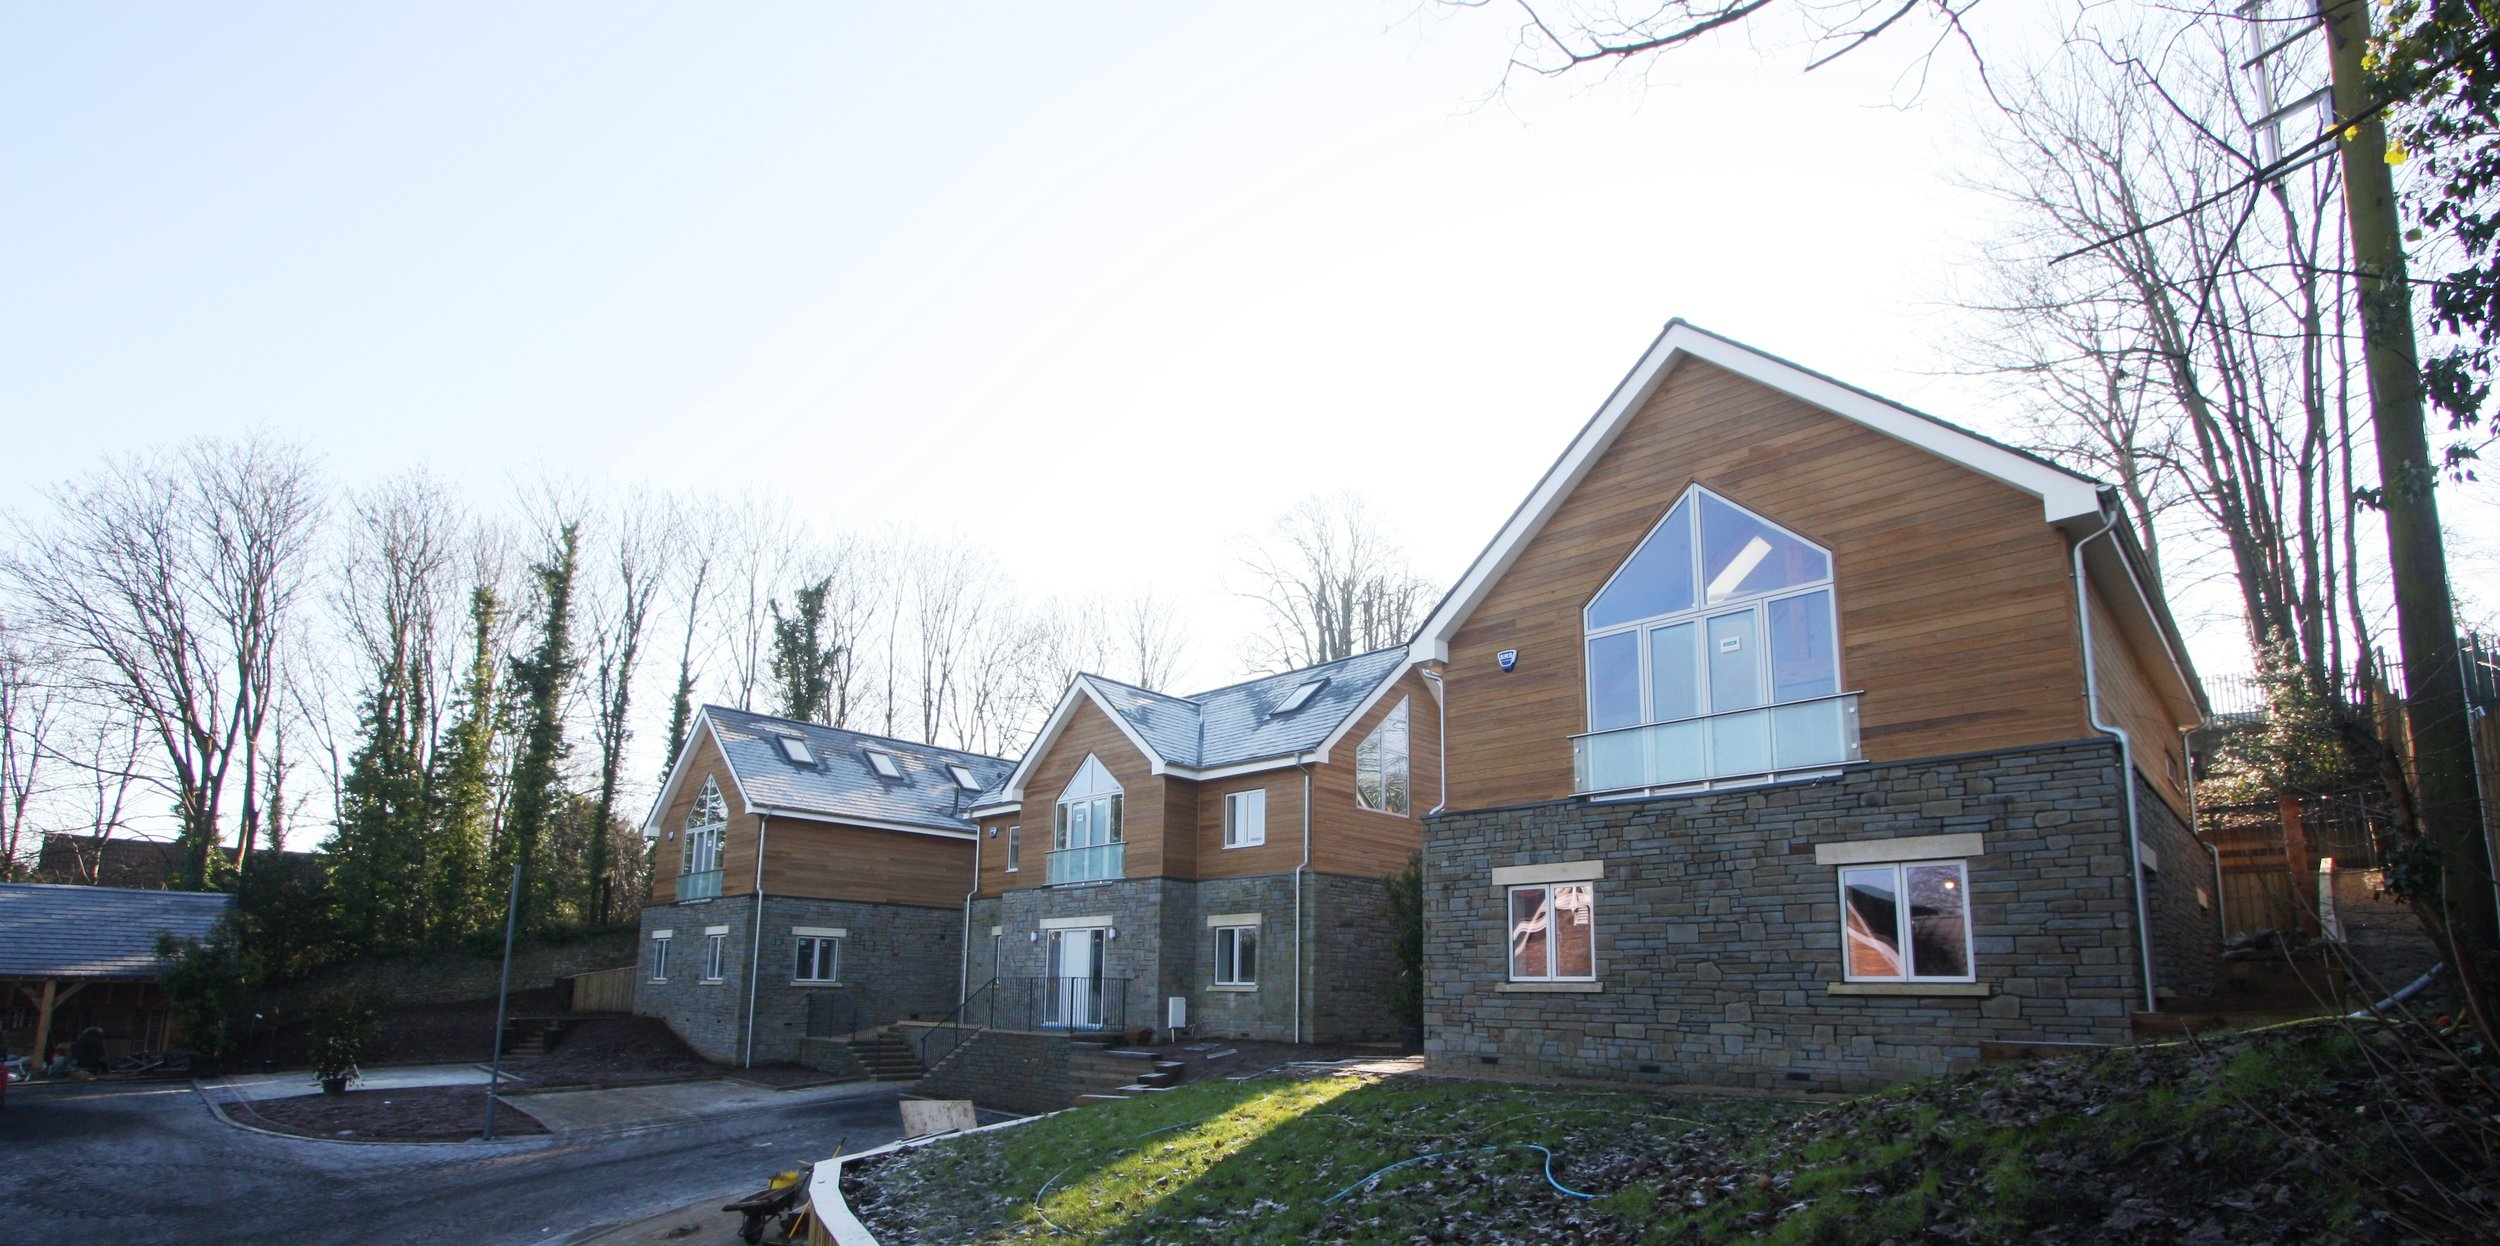 JUST ONE NEW BUILD PROPERTY REMAINING AT TREETOPS